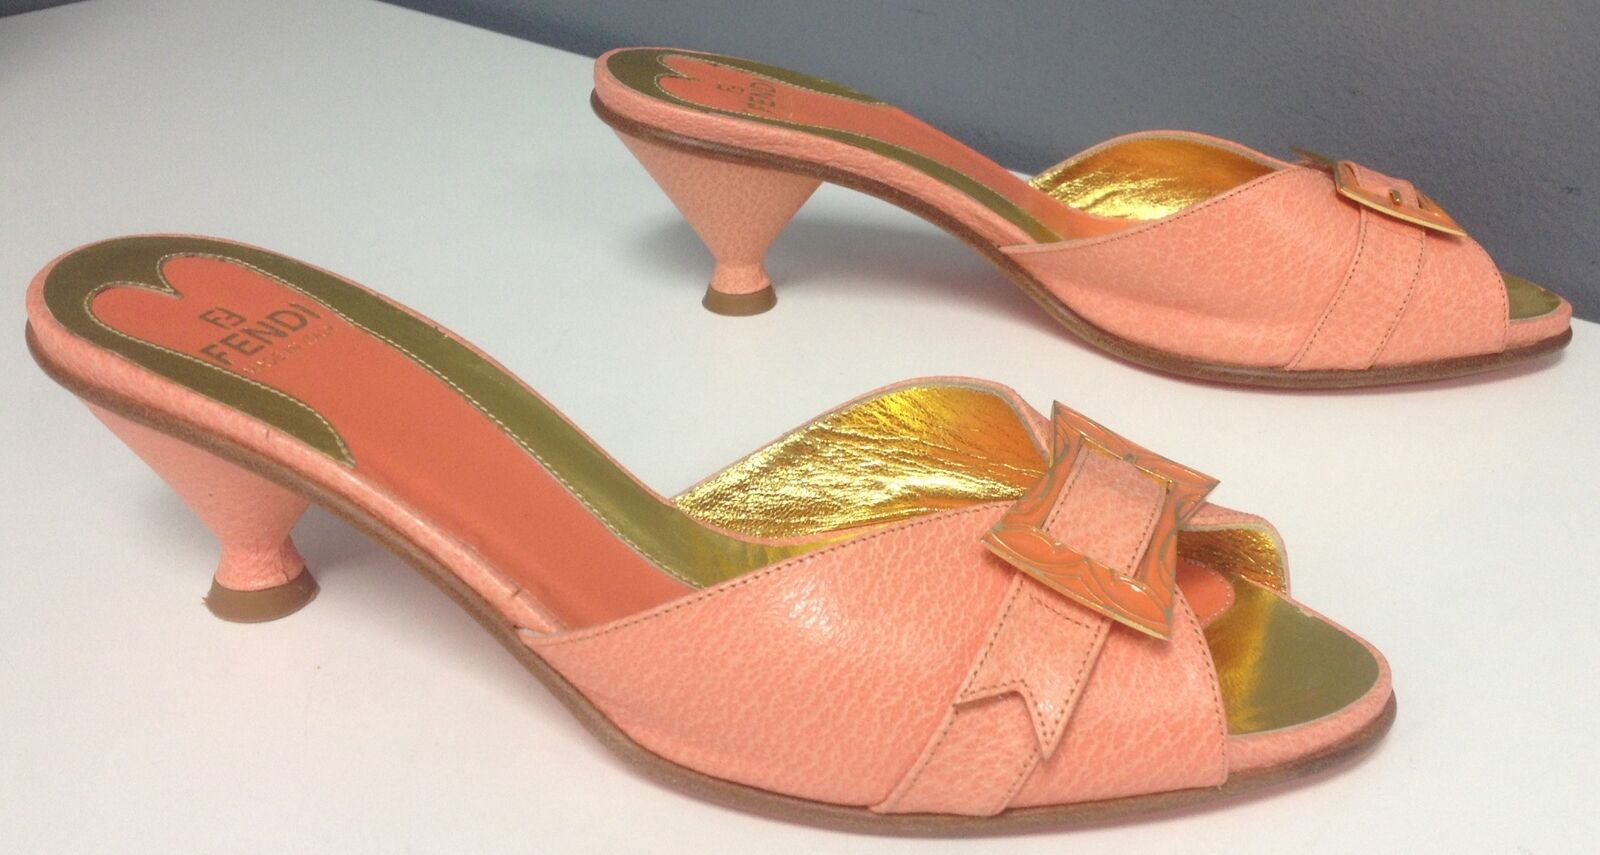 FENDI Peach Leather gold Tone Buckle Top Accent Medium Heel Sandal Sz 37 B4590